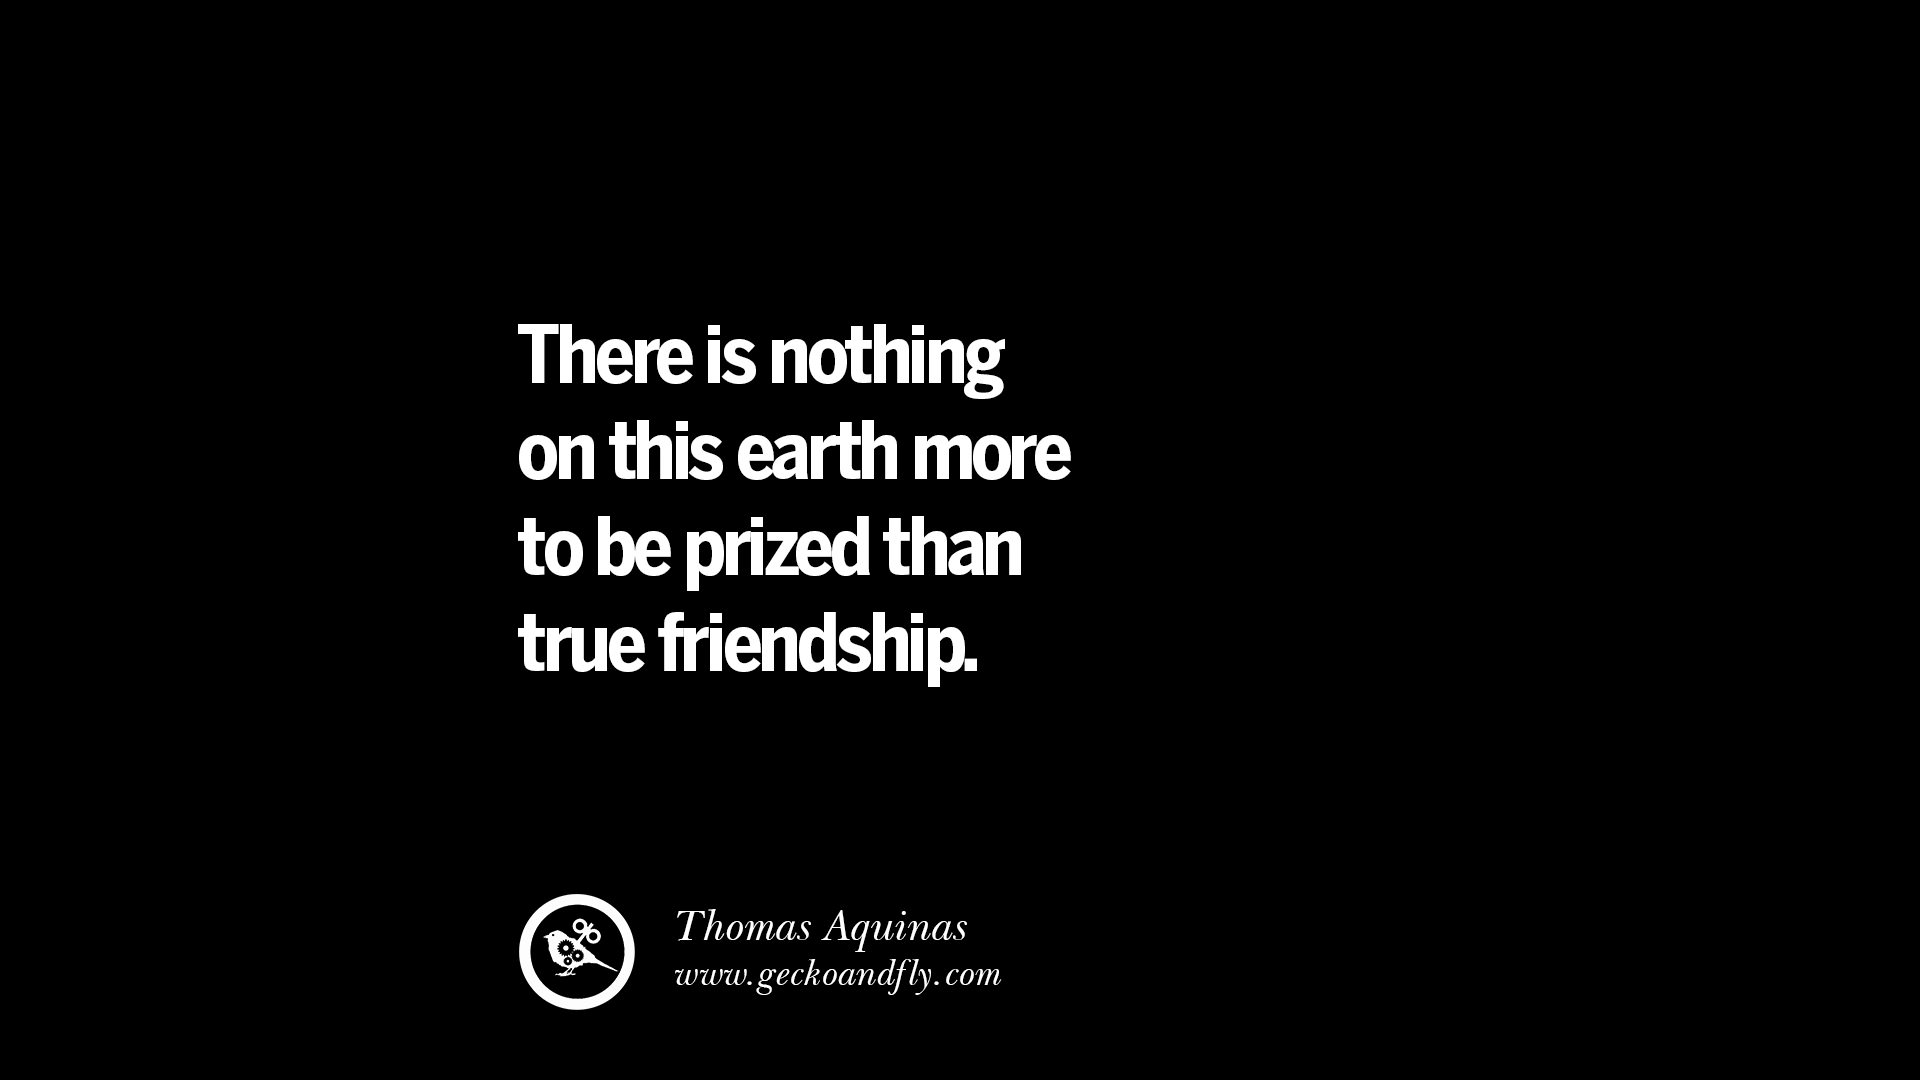 Tagalog Quotes About Love And Friendship Classy 20 Amazing Quotes About Friendship Love And Friends  Geckoandfly 2018